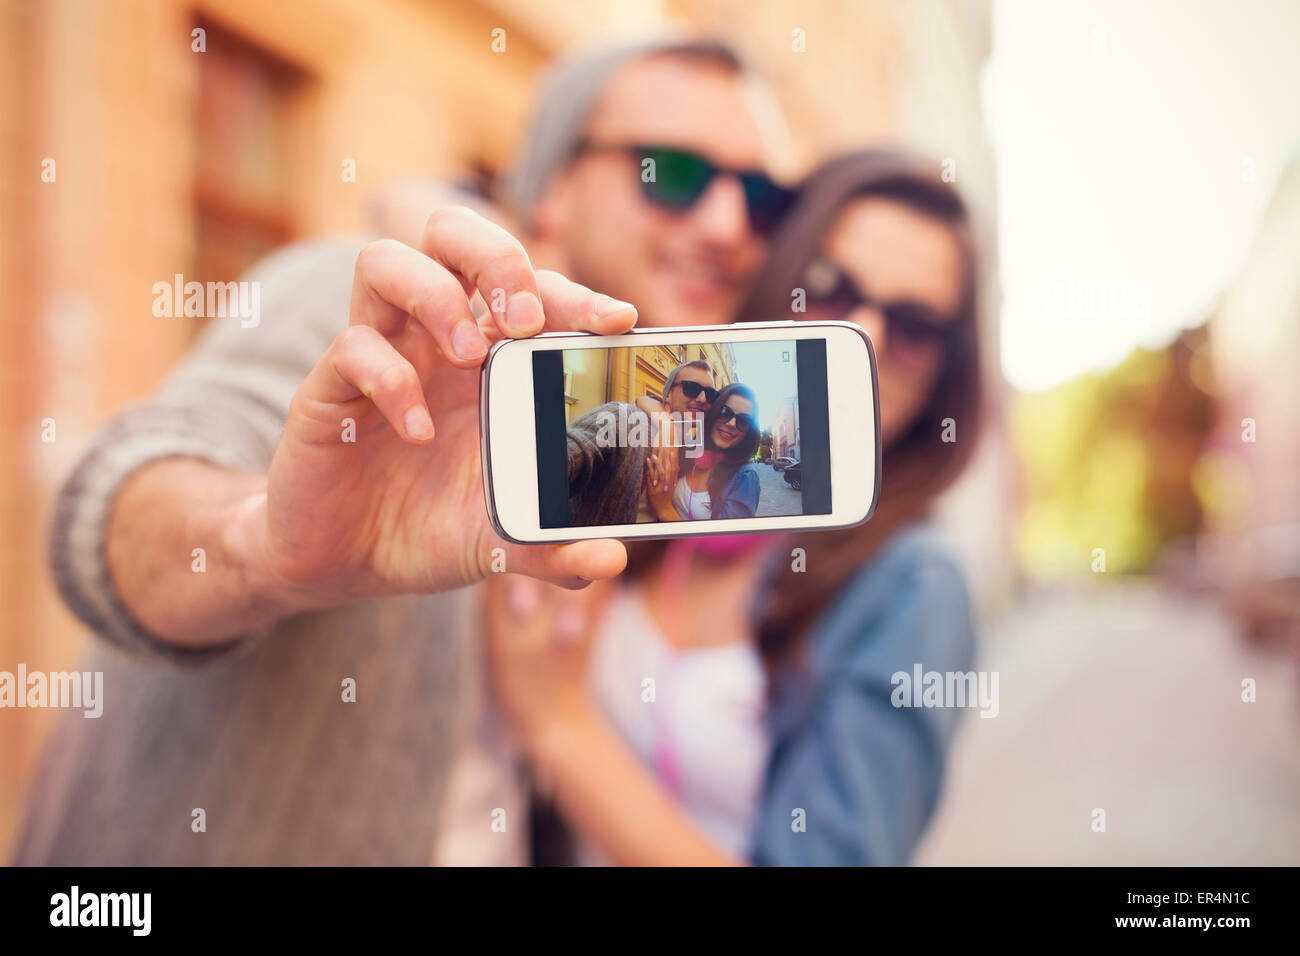 Couple en selfies la ville. Cracovie, Pologne Photo Stock